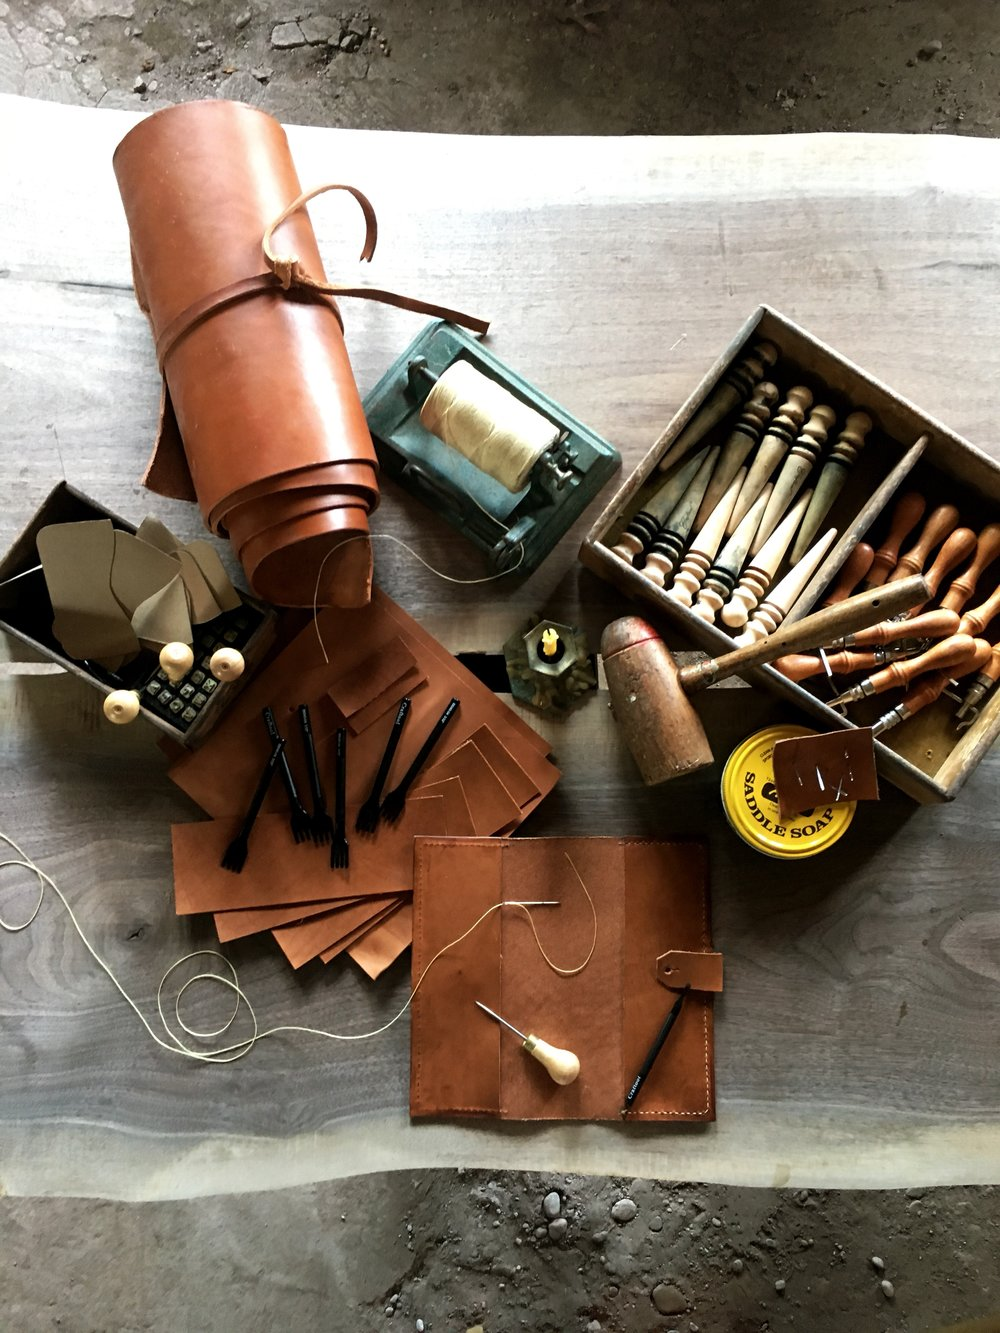 Get your Hand Leather Smithing tool kit ! - Wrapped in a hand stitched leather pouch, our kit includes the professional tools set you need, listed bellow - $150Wood slicker / Stitching groover / 4 prong chisel punch / 1 prong chisel punch / Scratch awl / Mallet / Poundo board / Adhesive (3oz tin) / Saddle soap (3oz tin) / Waxed thread (black & natural 5' each) / Stitching needle (2) / Sand paper block.